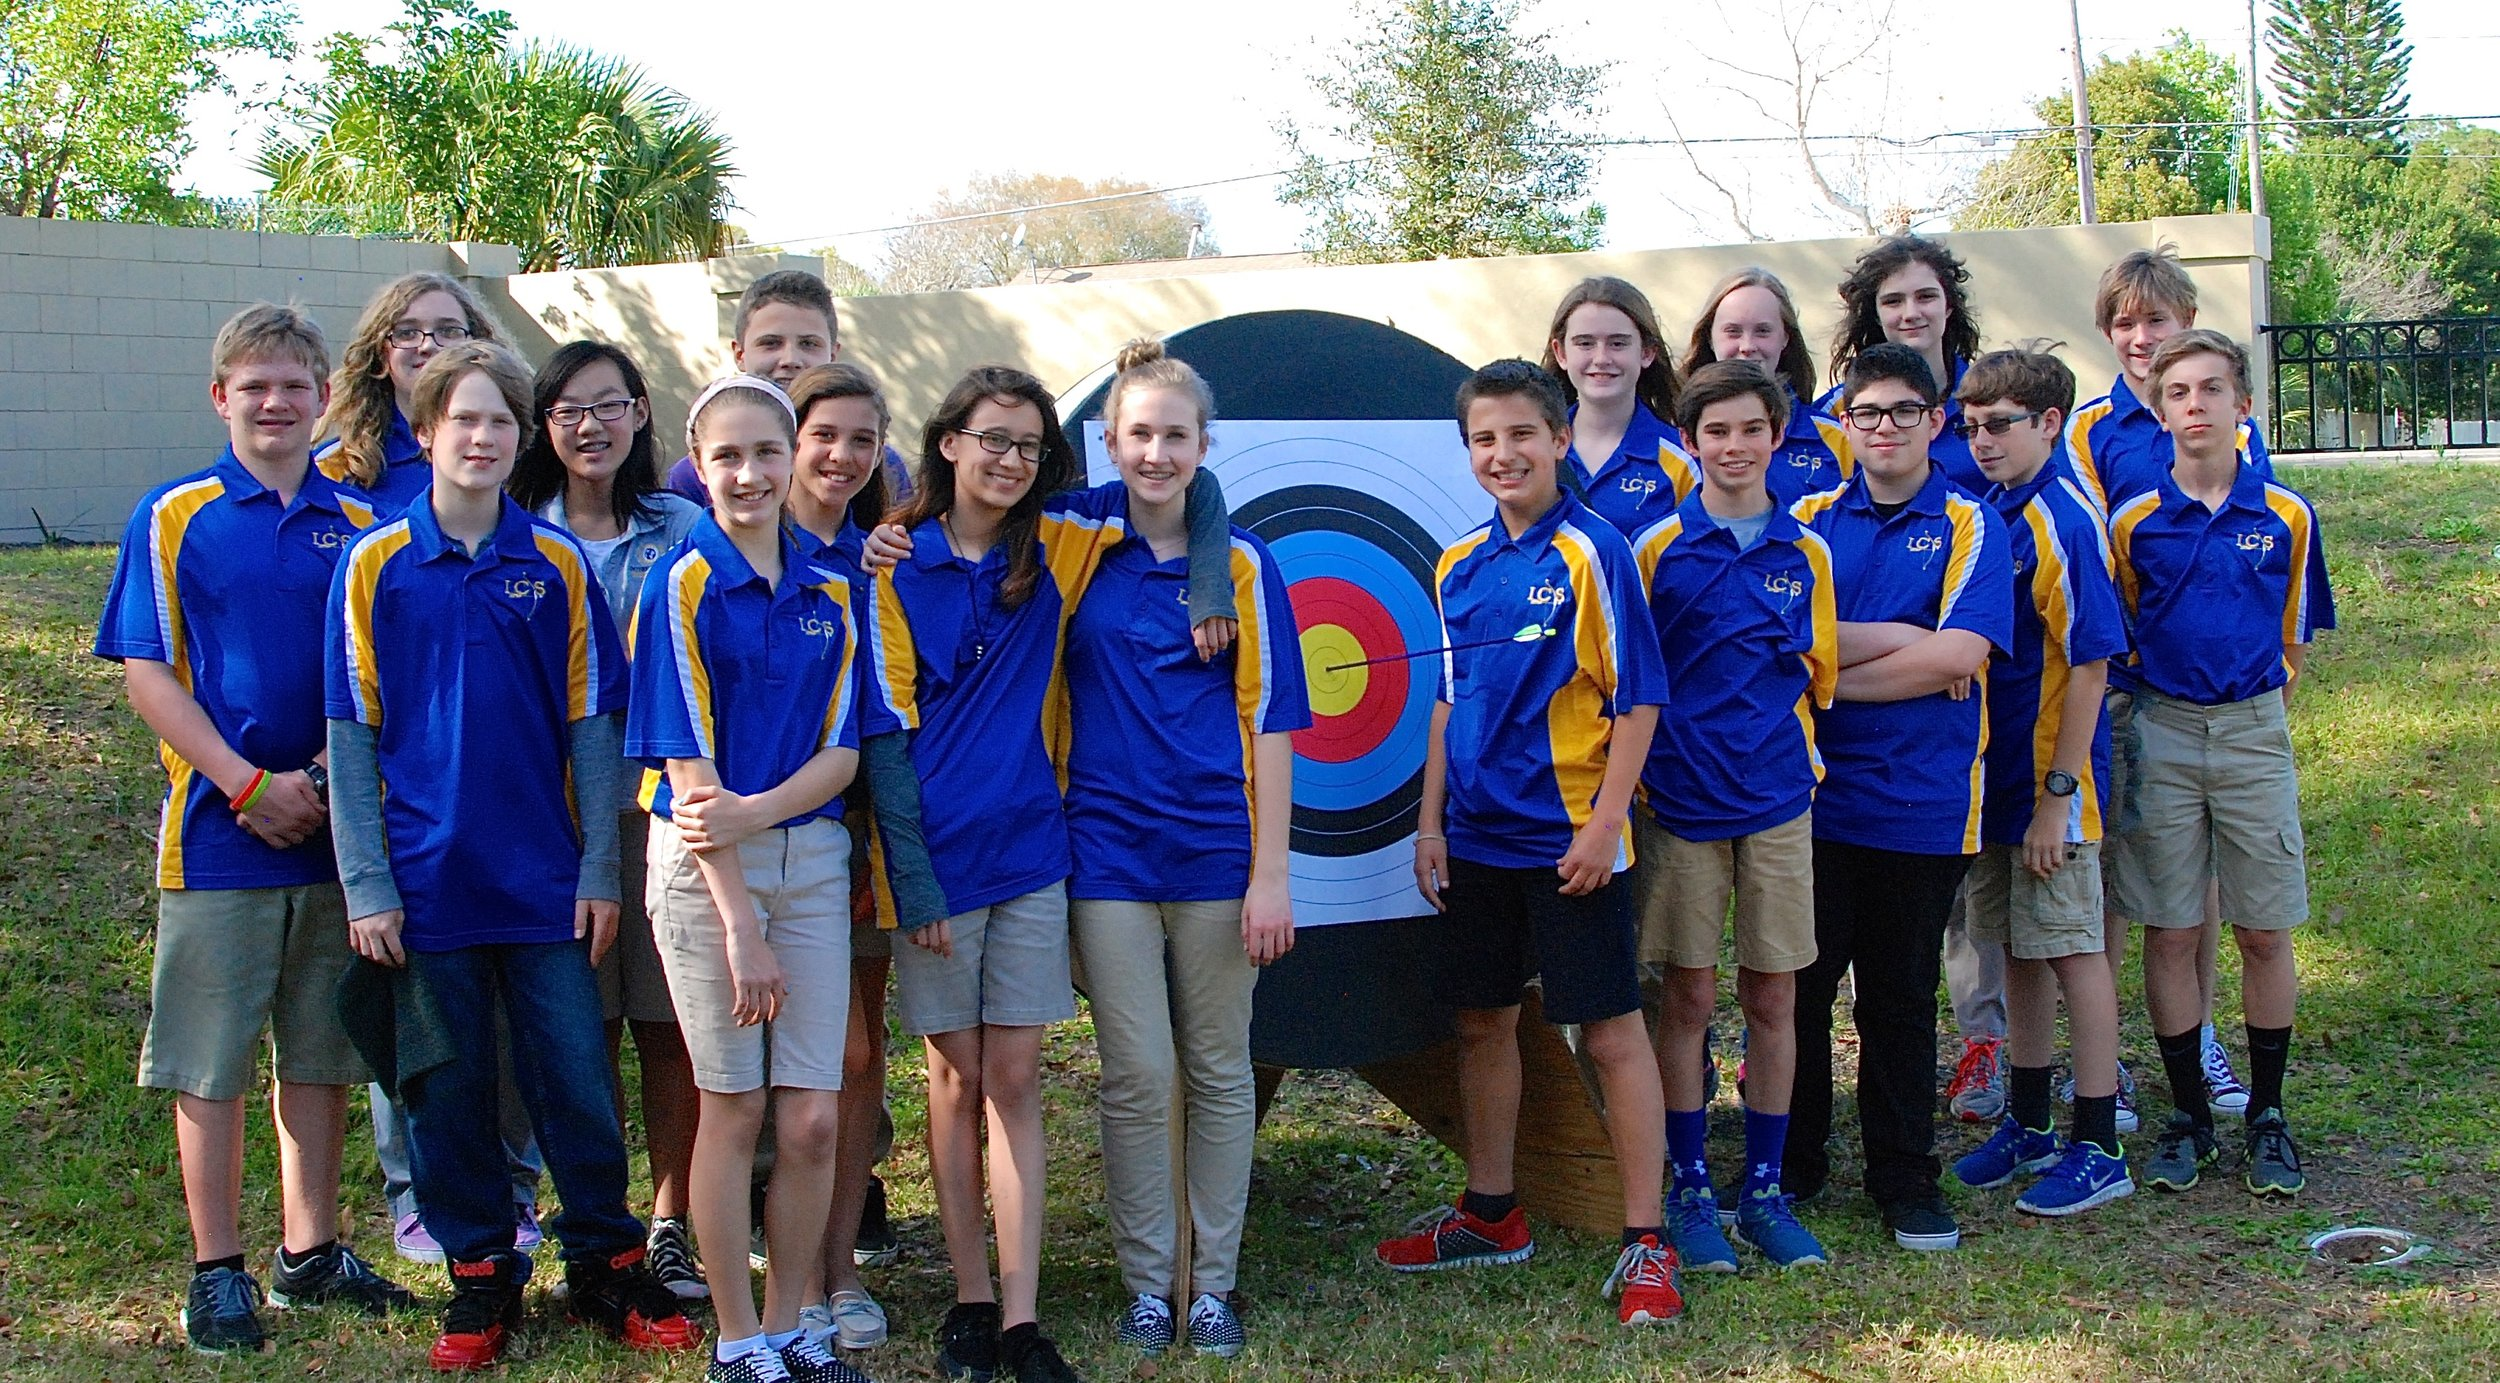 International Community School archery team competing in the 2015 Spring Mail-in Tournament